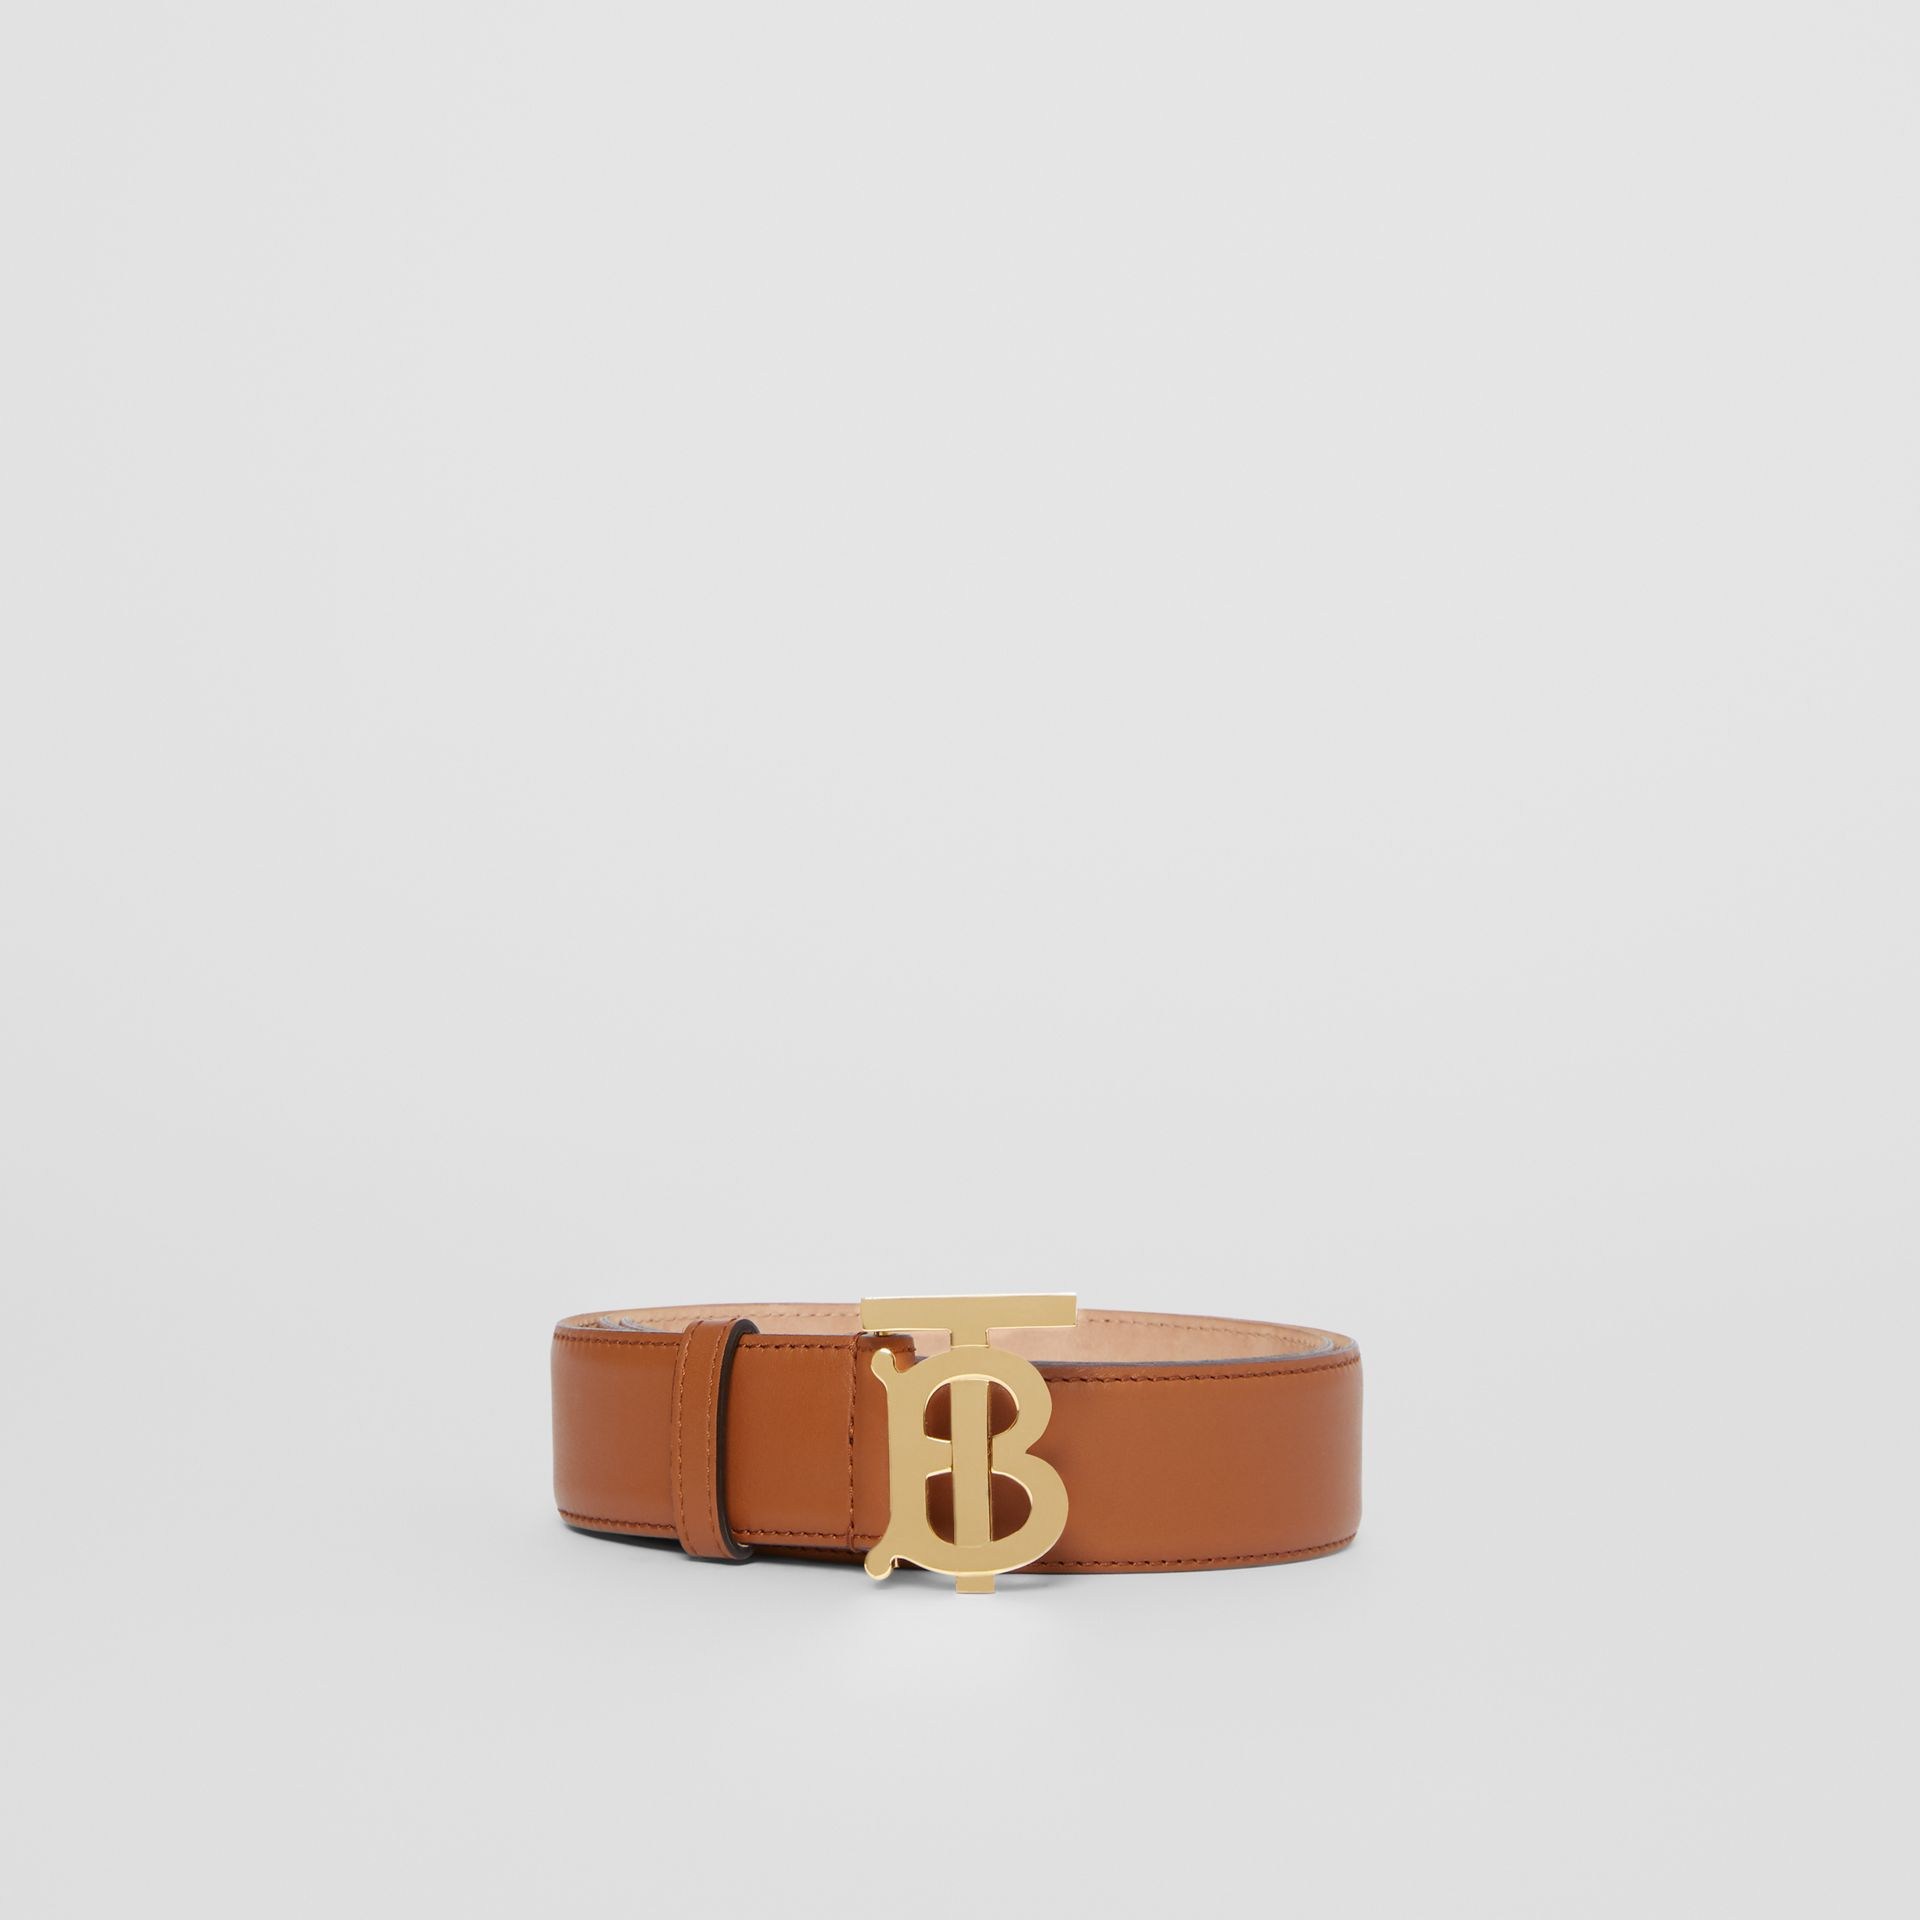 Monogram Motif Leather Belt in Tan - Women | Burberry Singapore - gallery image 3